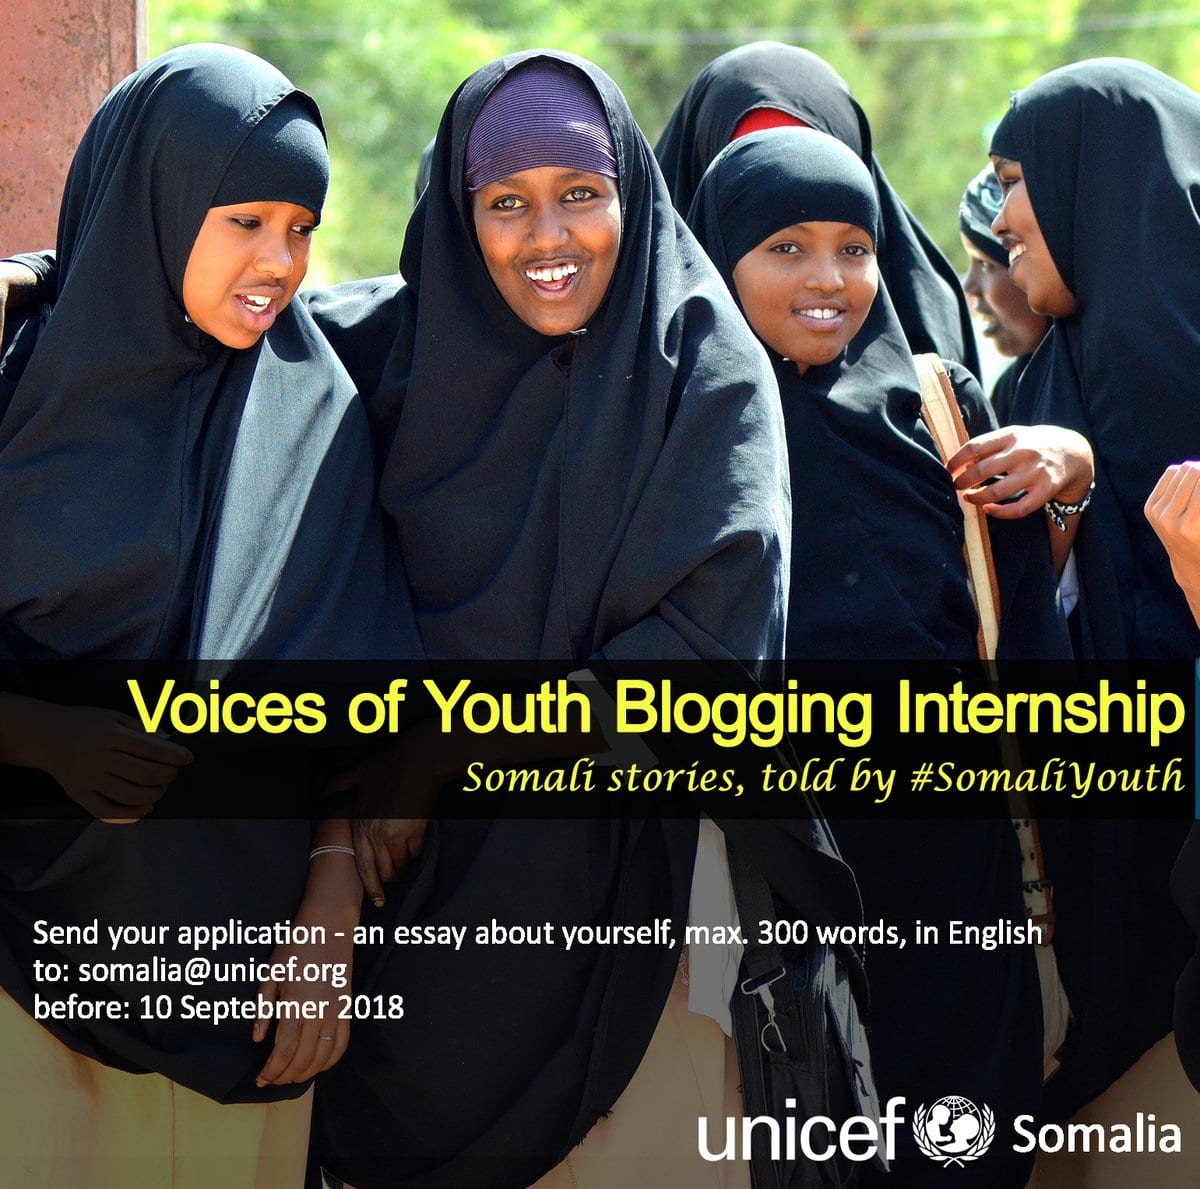 UNICEF Somalia Voices of Youth Blogging Internship 2018 for young Somalis.